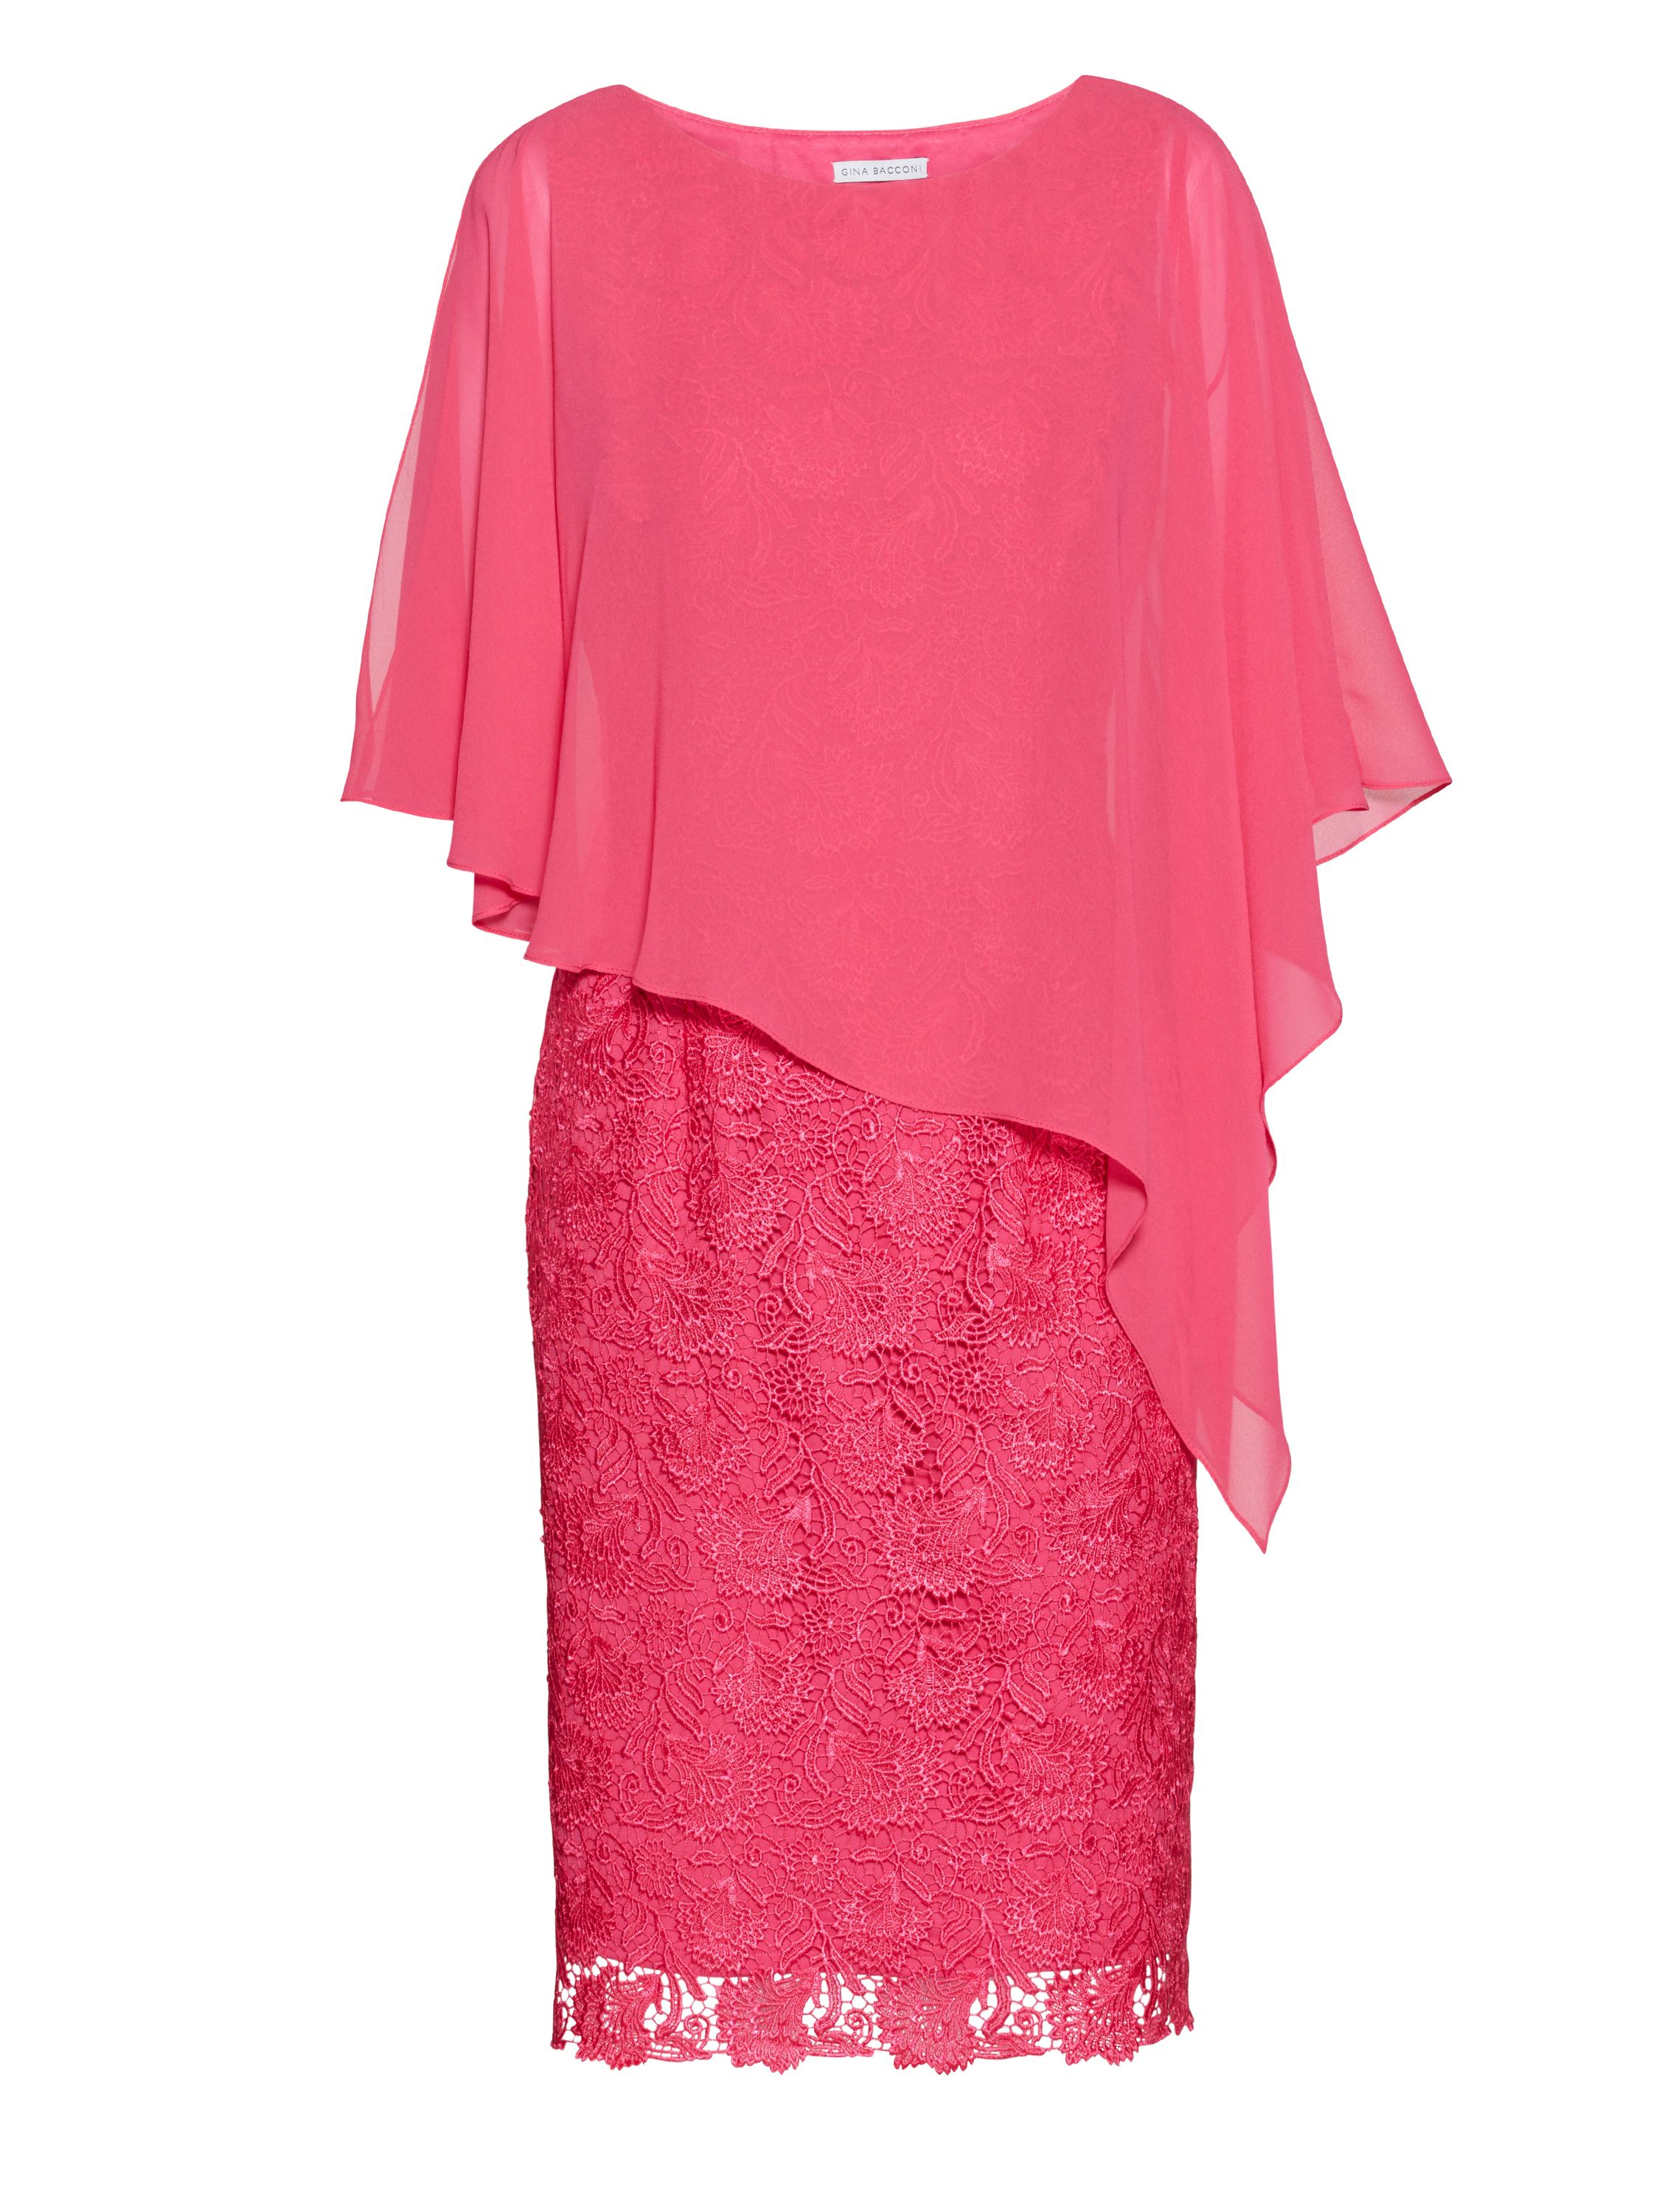 Gina Bacconi Red lace dress with chiffon cape, Pink